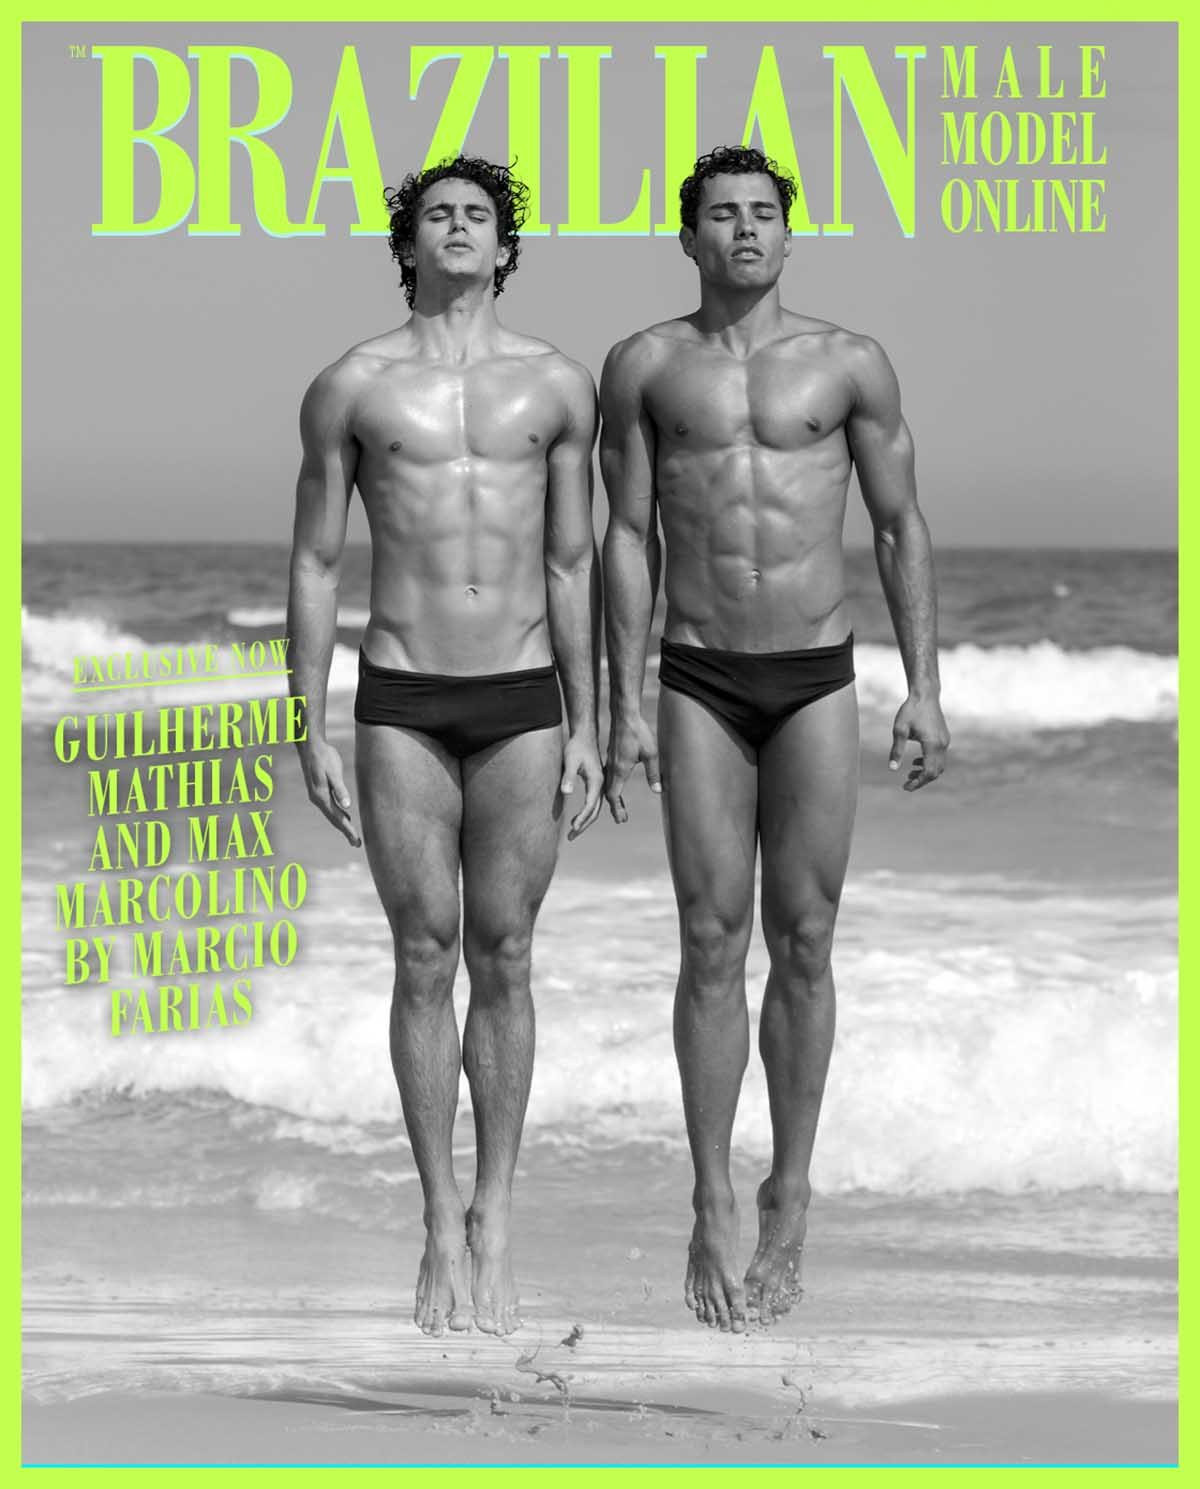 Guilherme Mathias and Max Marcolino by Marcio Farias